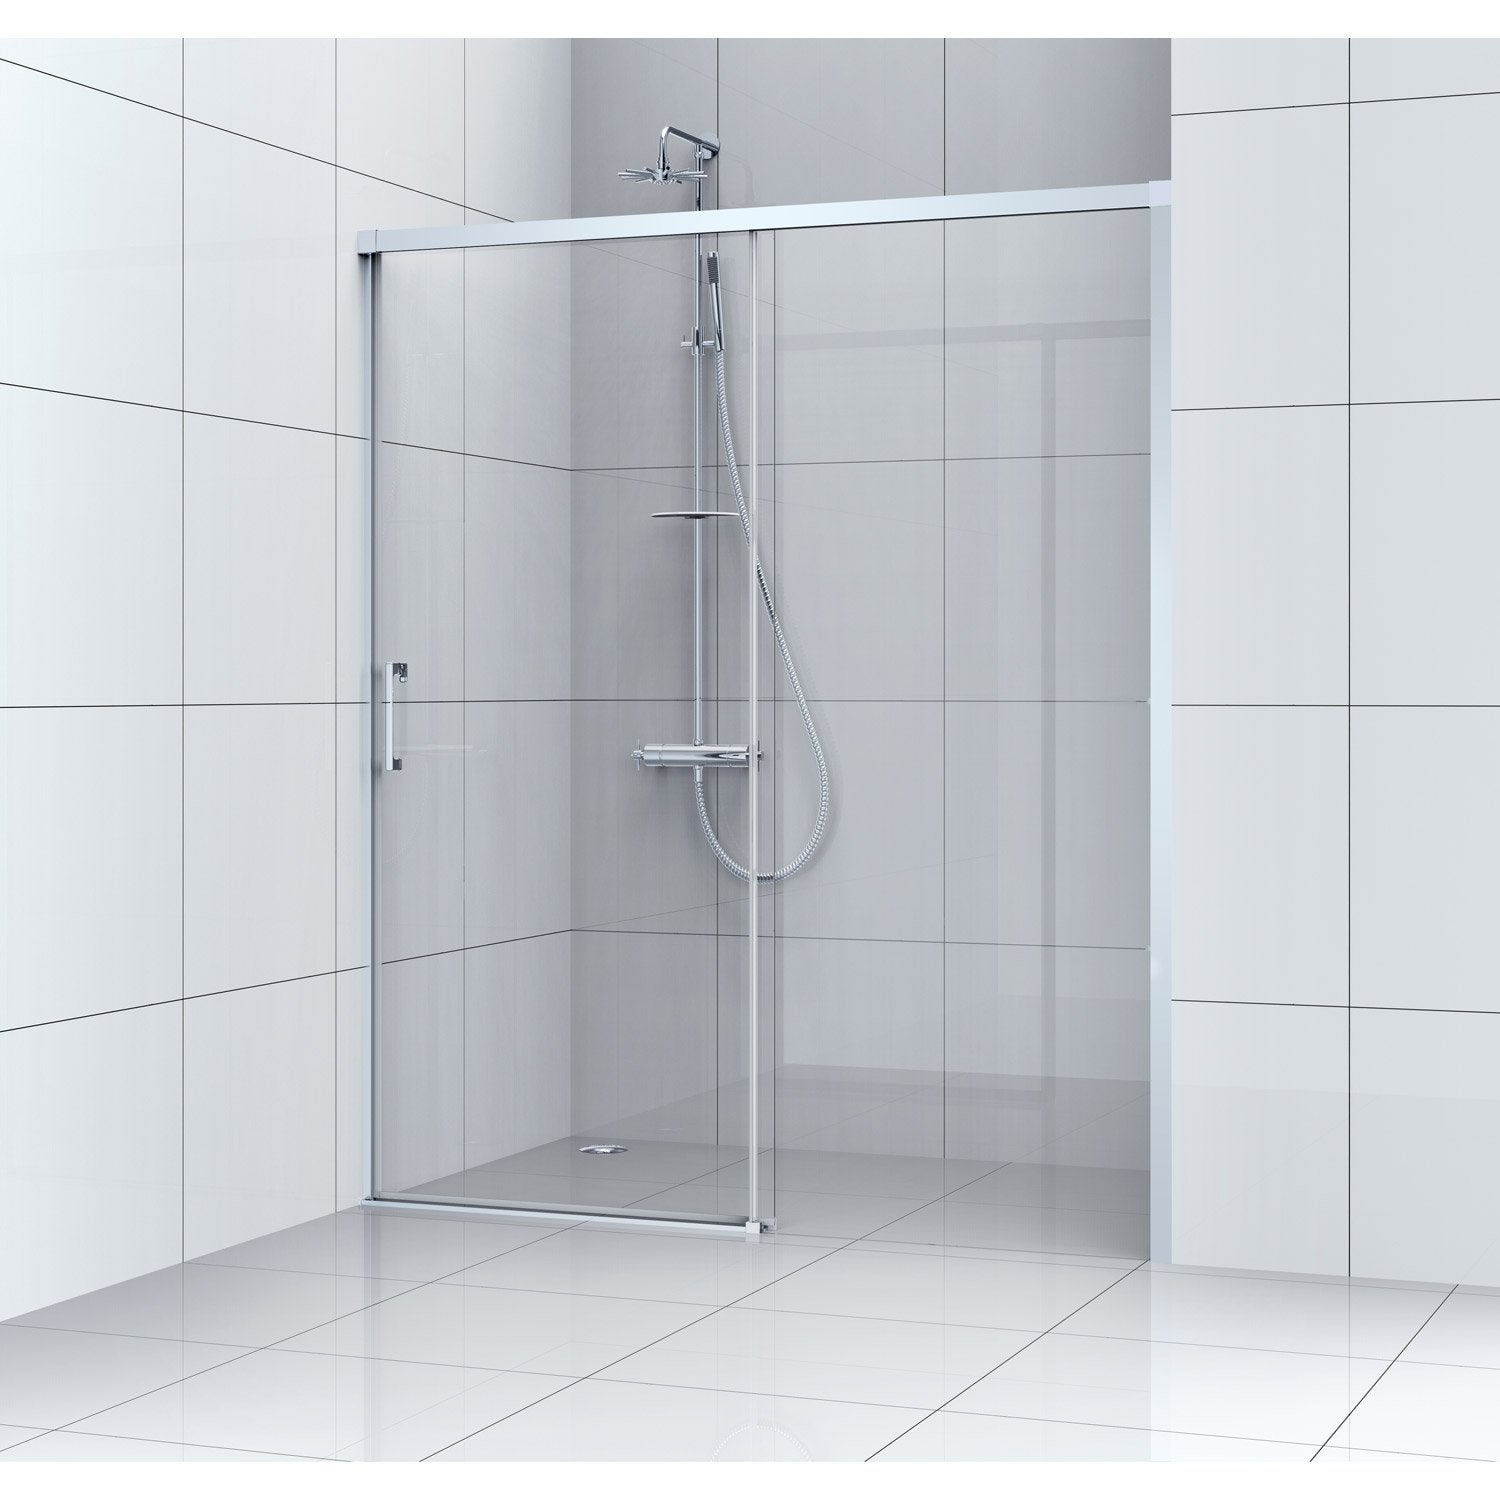 Porte de douche coulissante 100 cm transparent remix - Porte battante leroy merlin ...